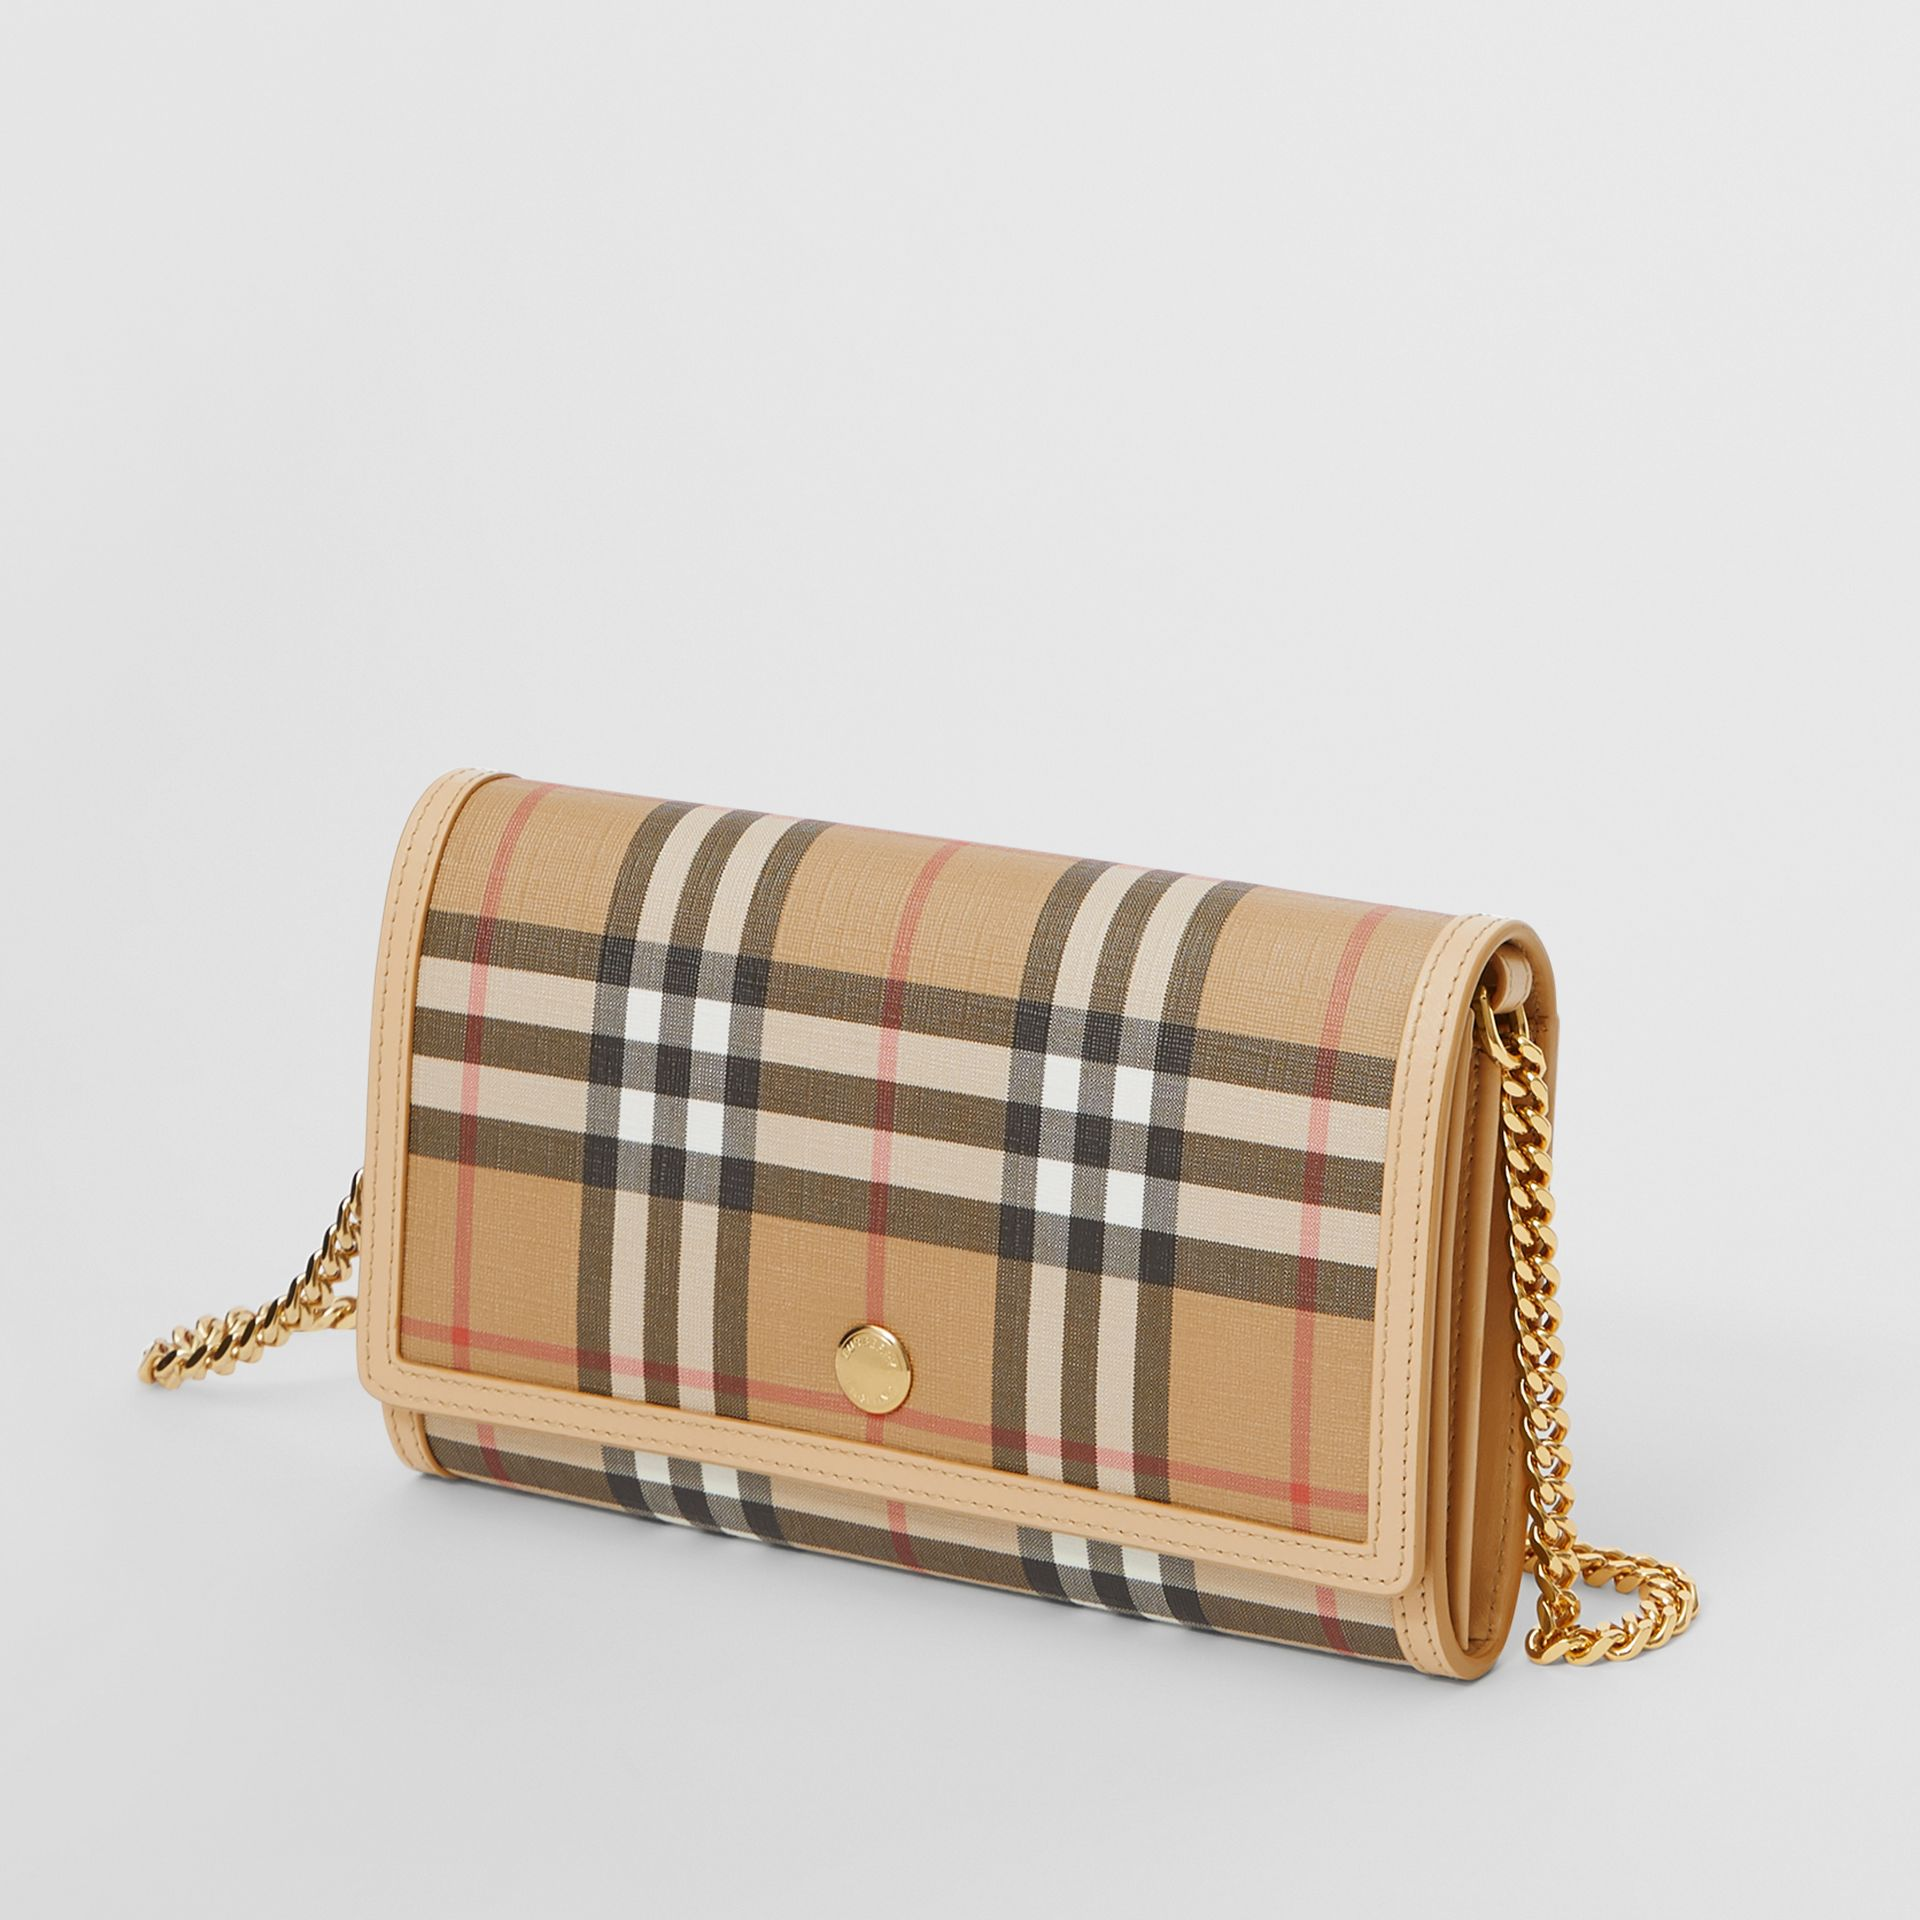 Vintage Check E-canvas Wallet with Detachable Strap in Beige - Women | Burberry - gallery image 3